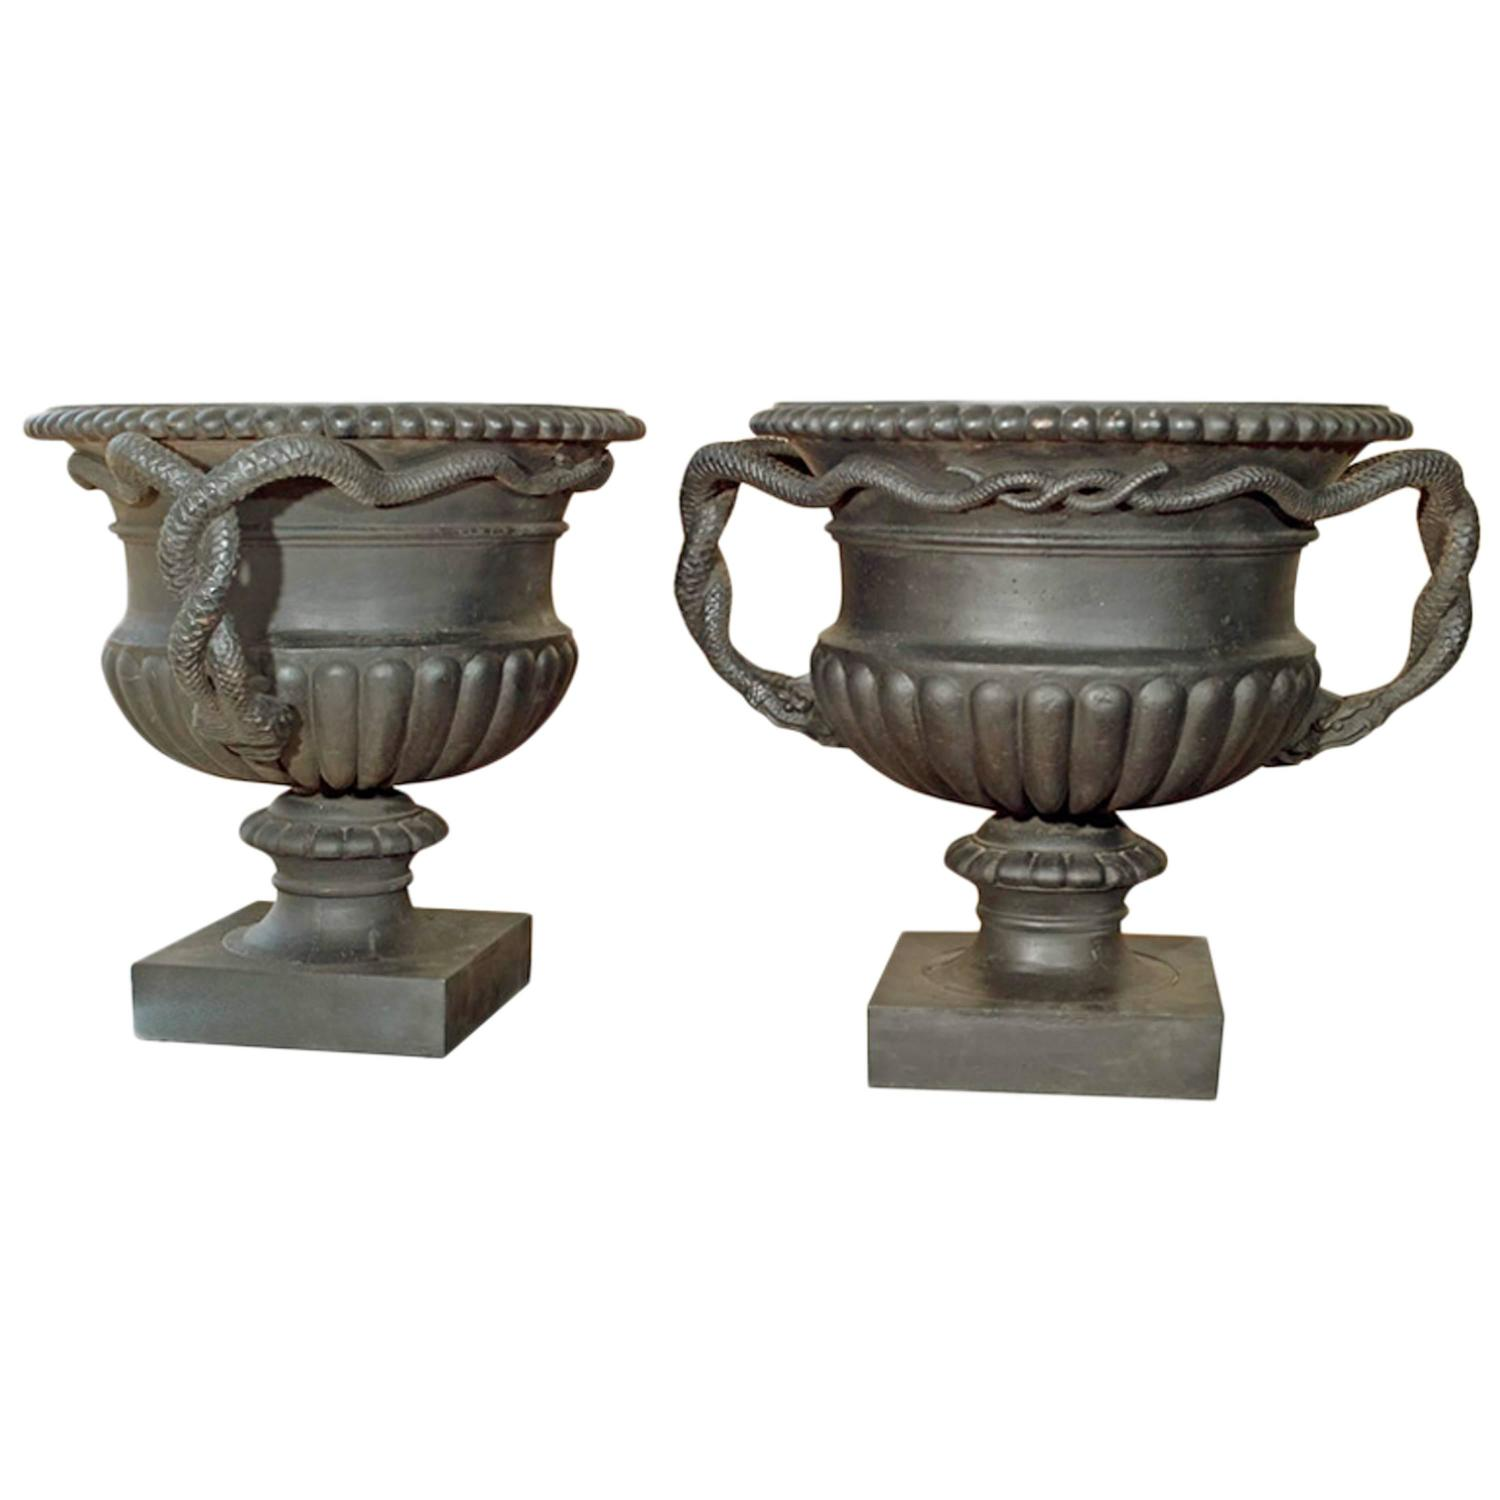 Pair Of Cast Iron Urns With Entwined Serpent Handles For Sale At 1stdibs